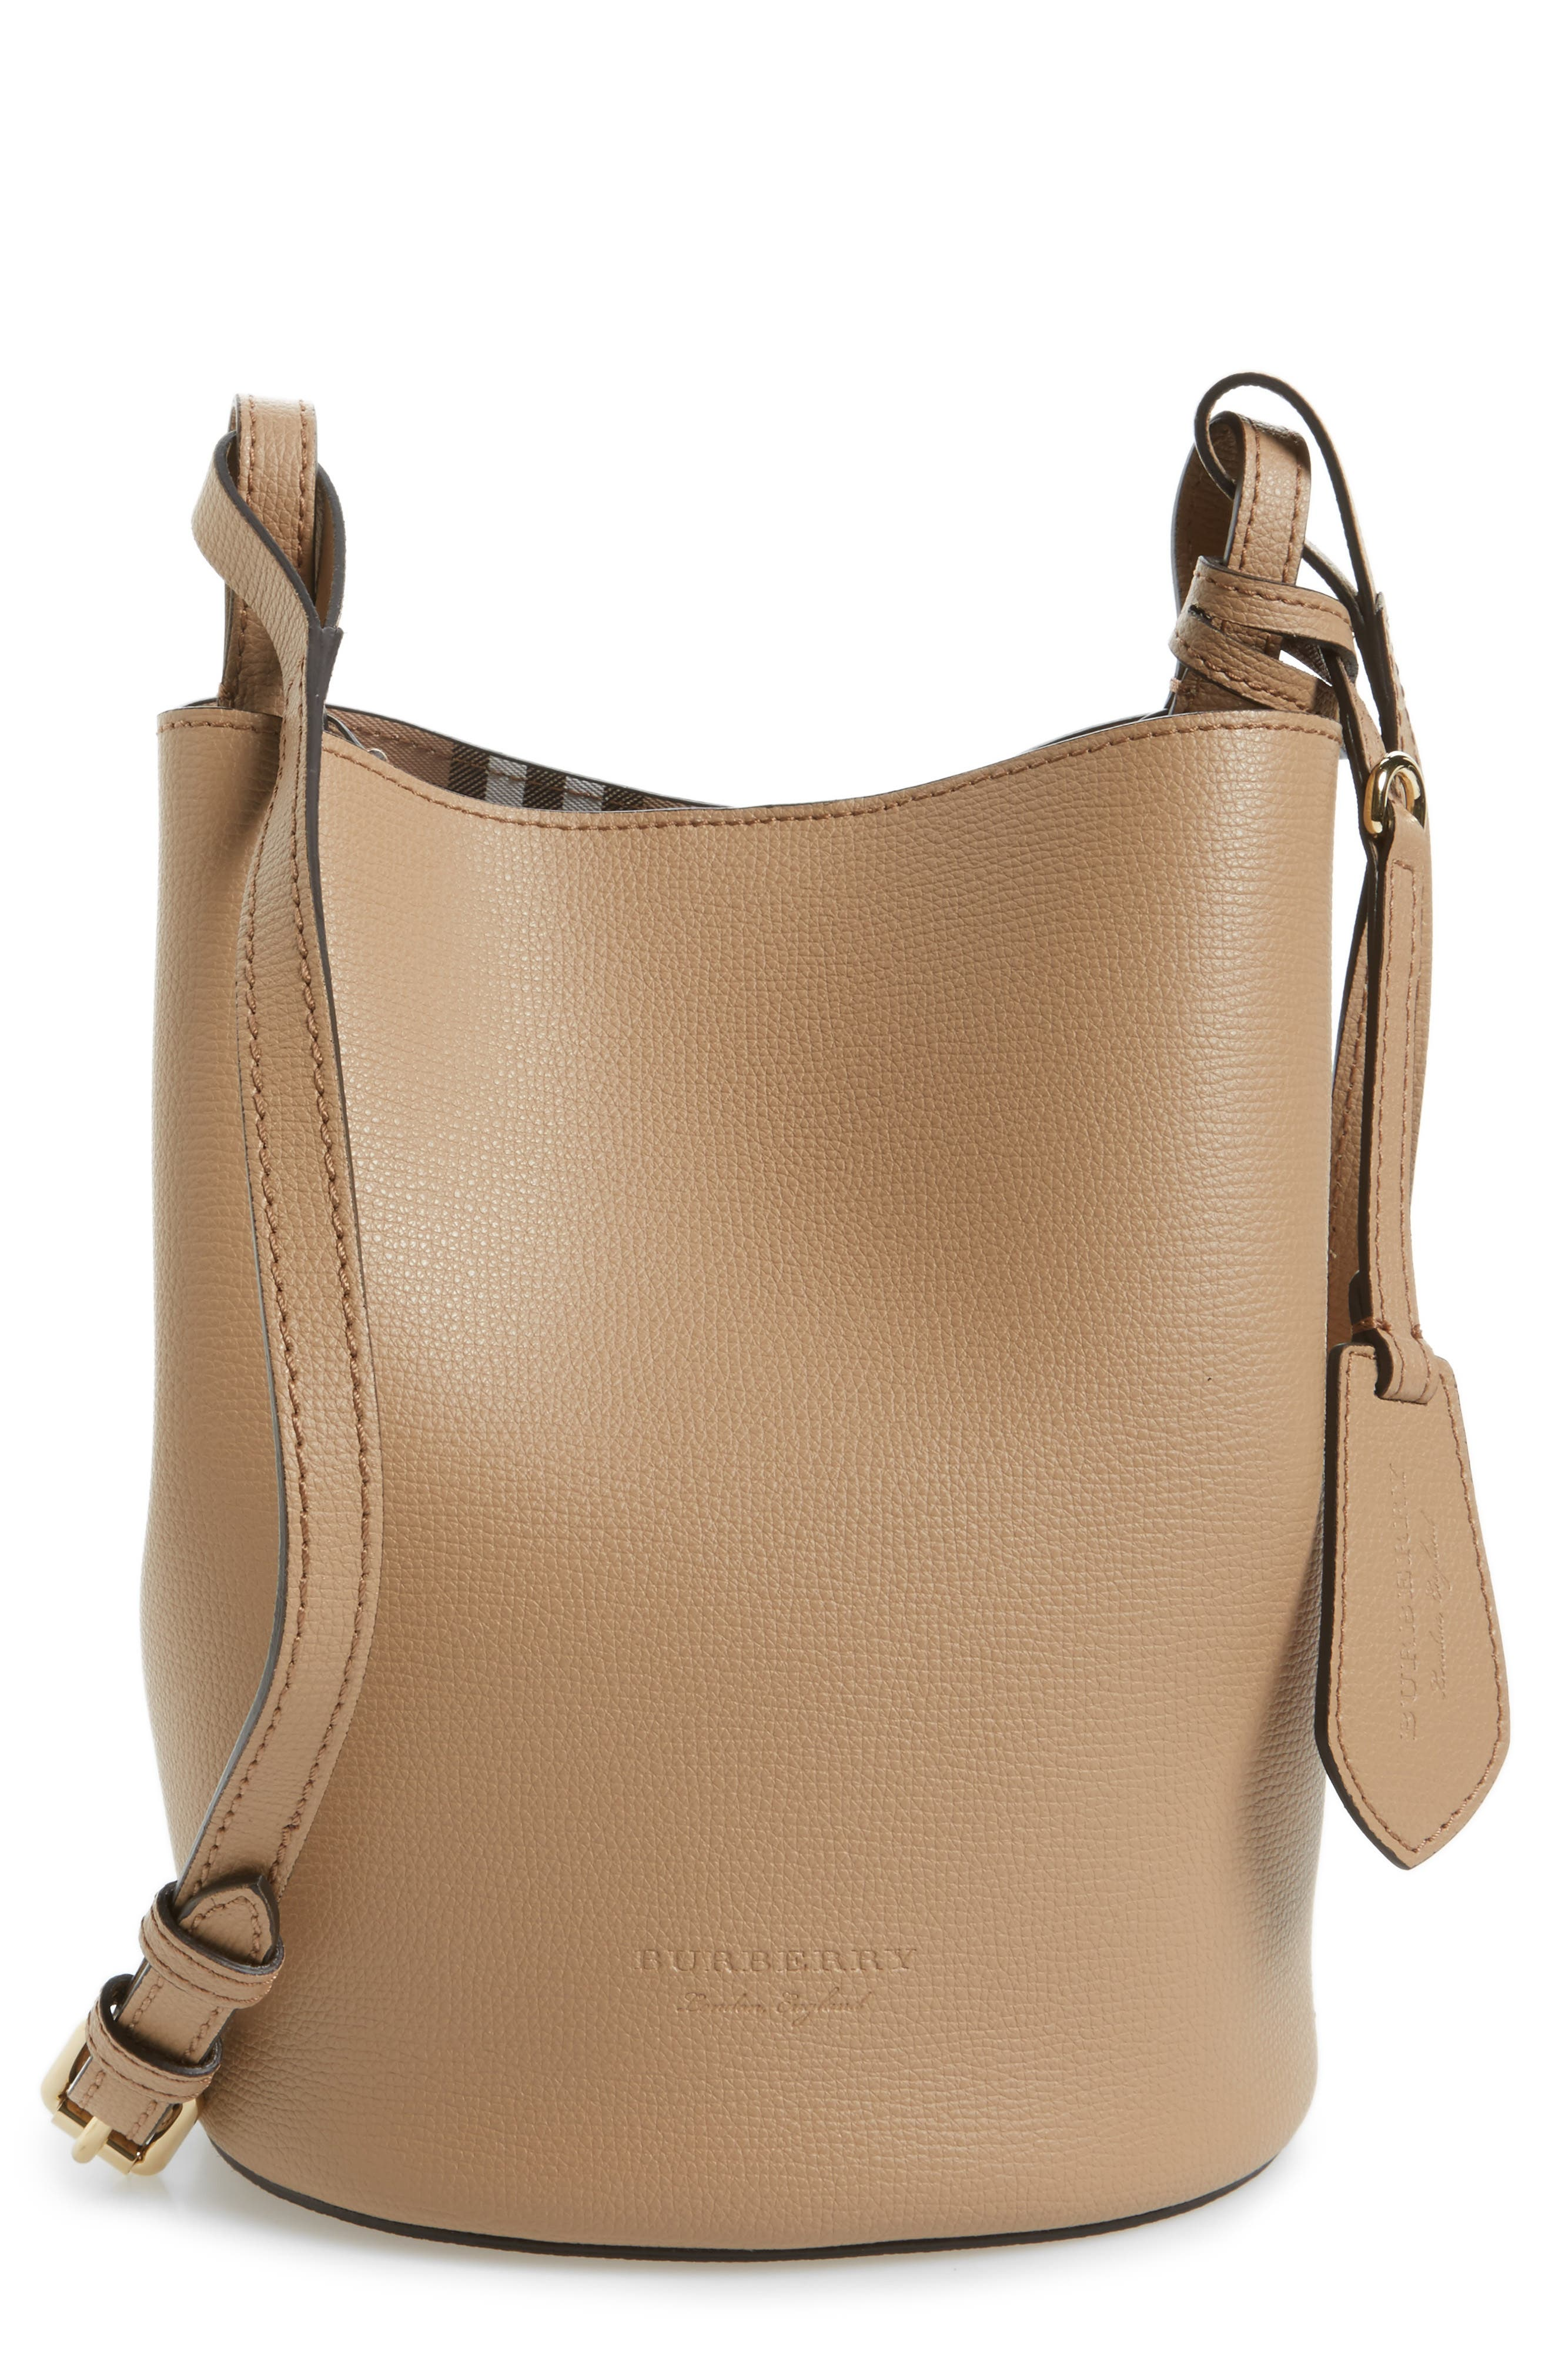 Alternate Image 1 Selected - Burberry Small Lorne Leather Bucket Bag